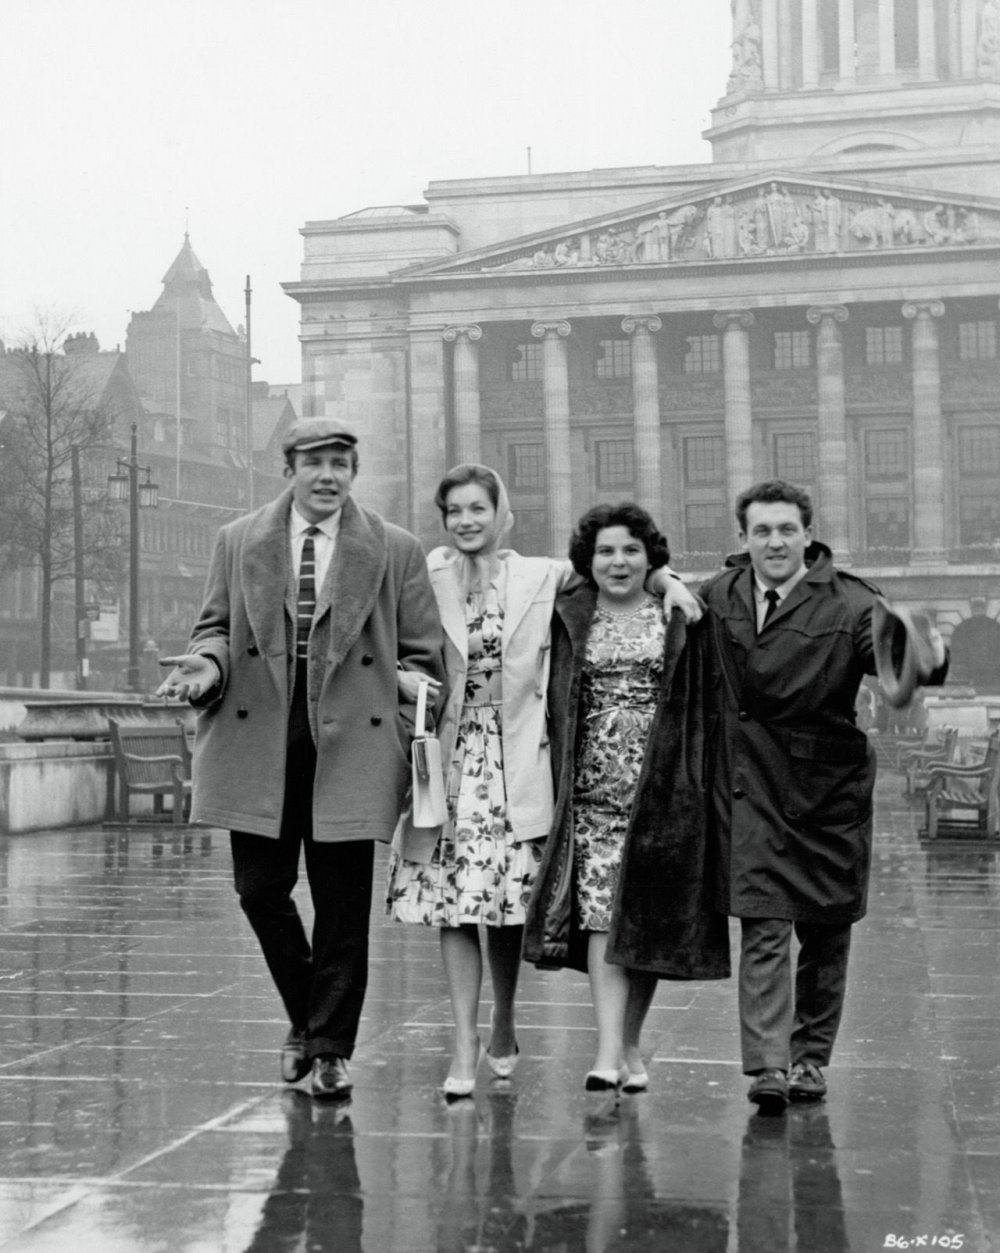 The cast of Saturday Night and Sunday Morning – Albert Finney, Shirley Anne Field, Louise Dunn and Norman Rossington – in Market Square, Nottingham